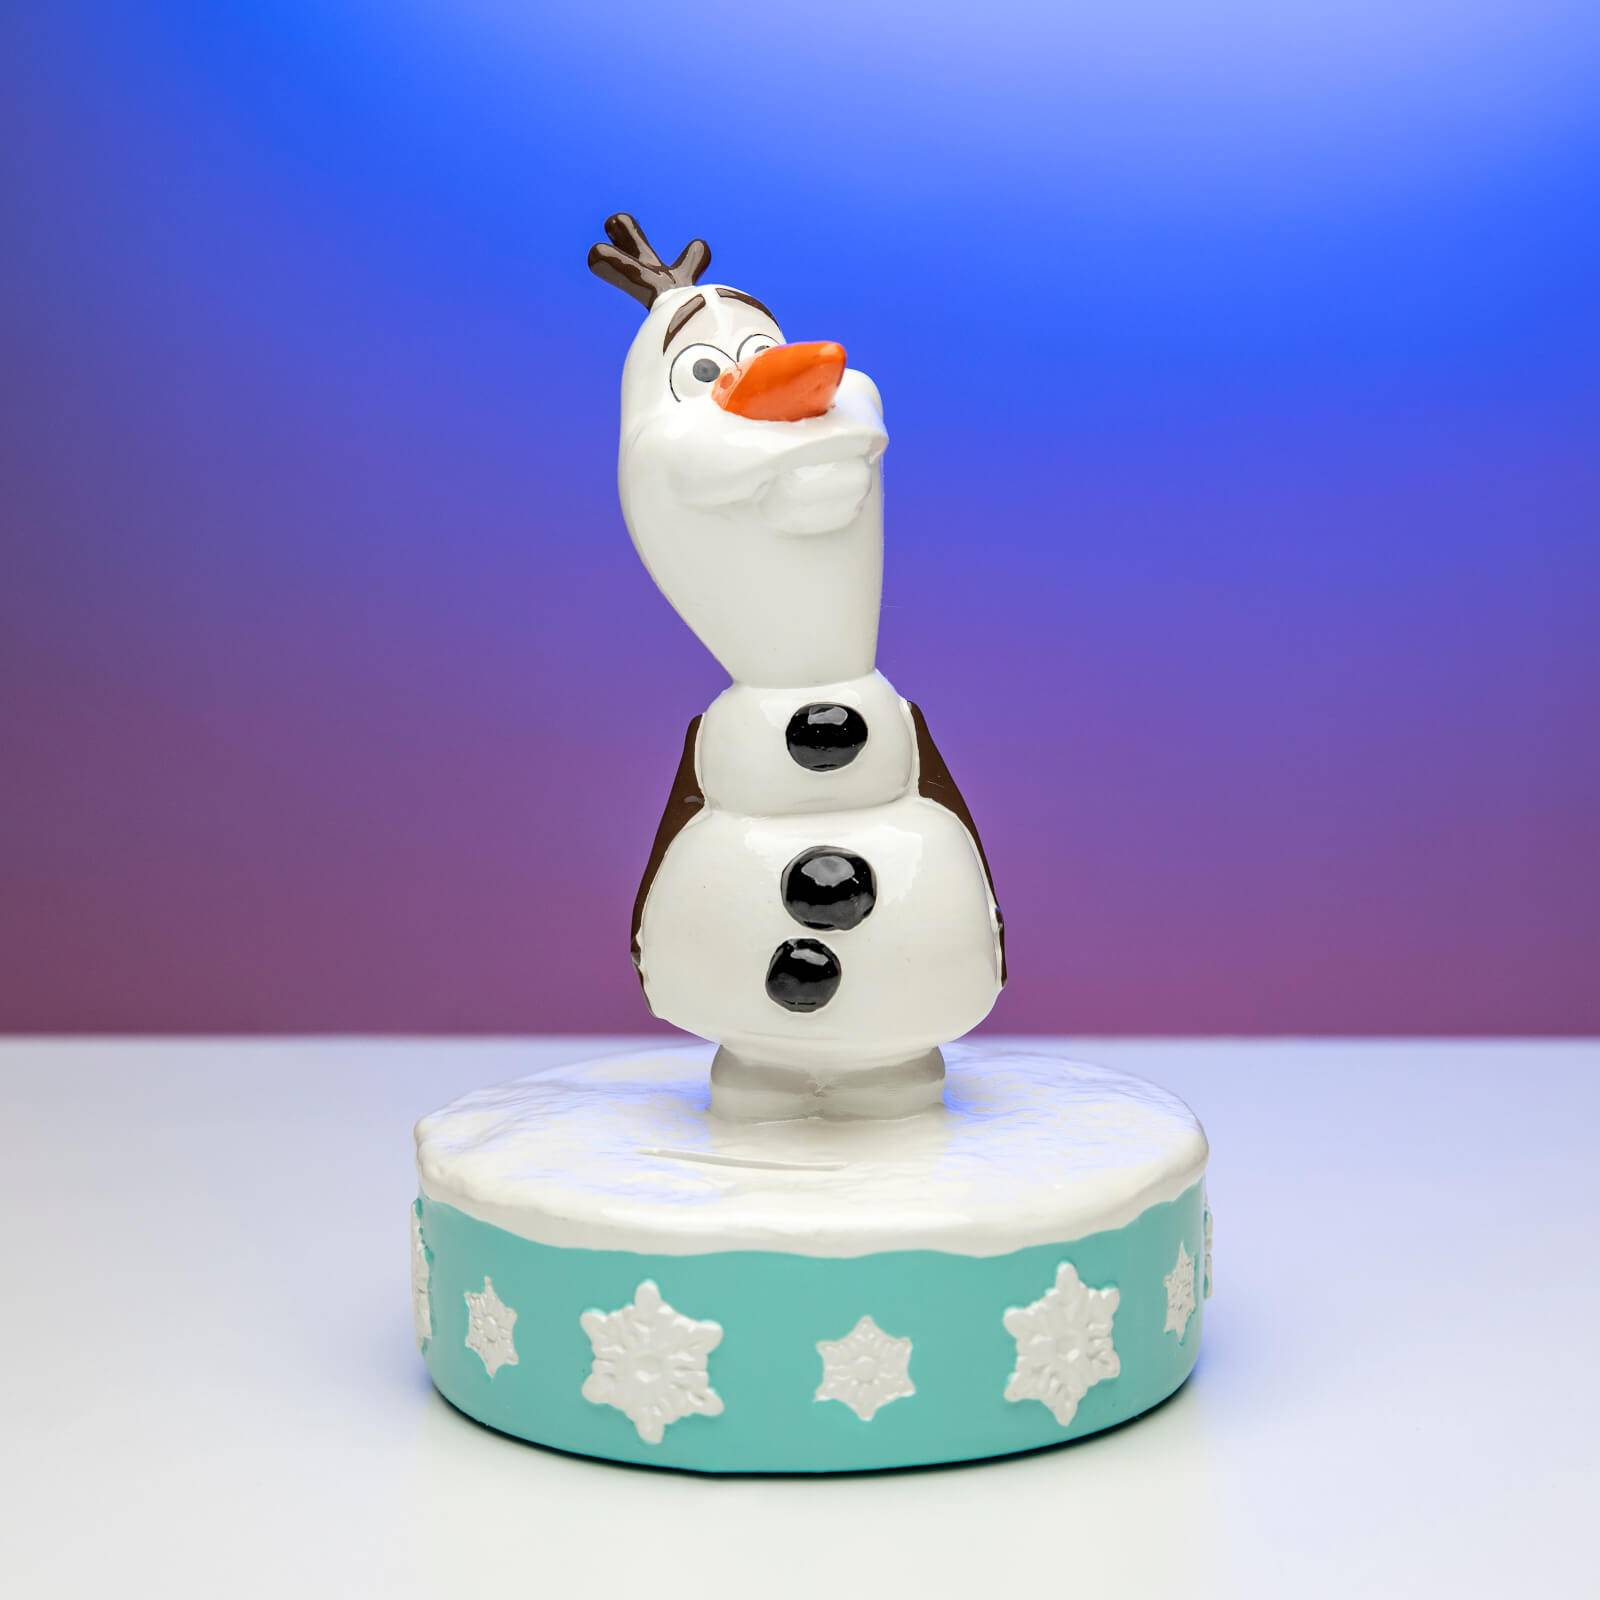 Paladone Frozen Olaf Money Box